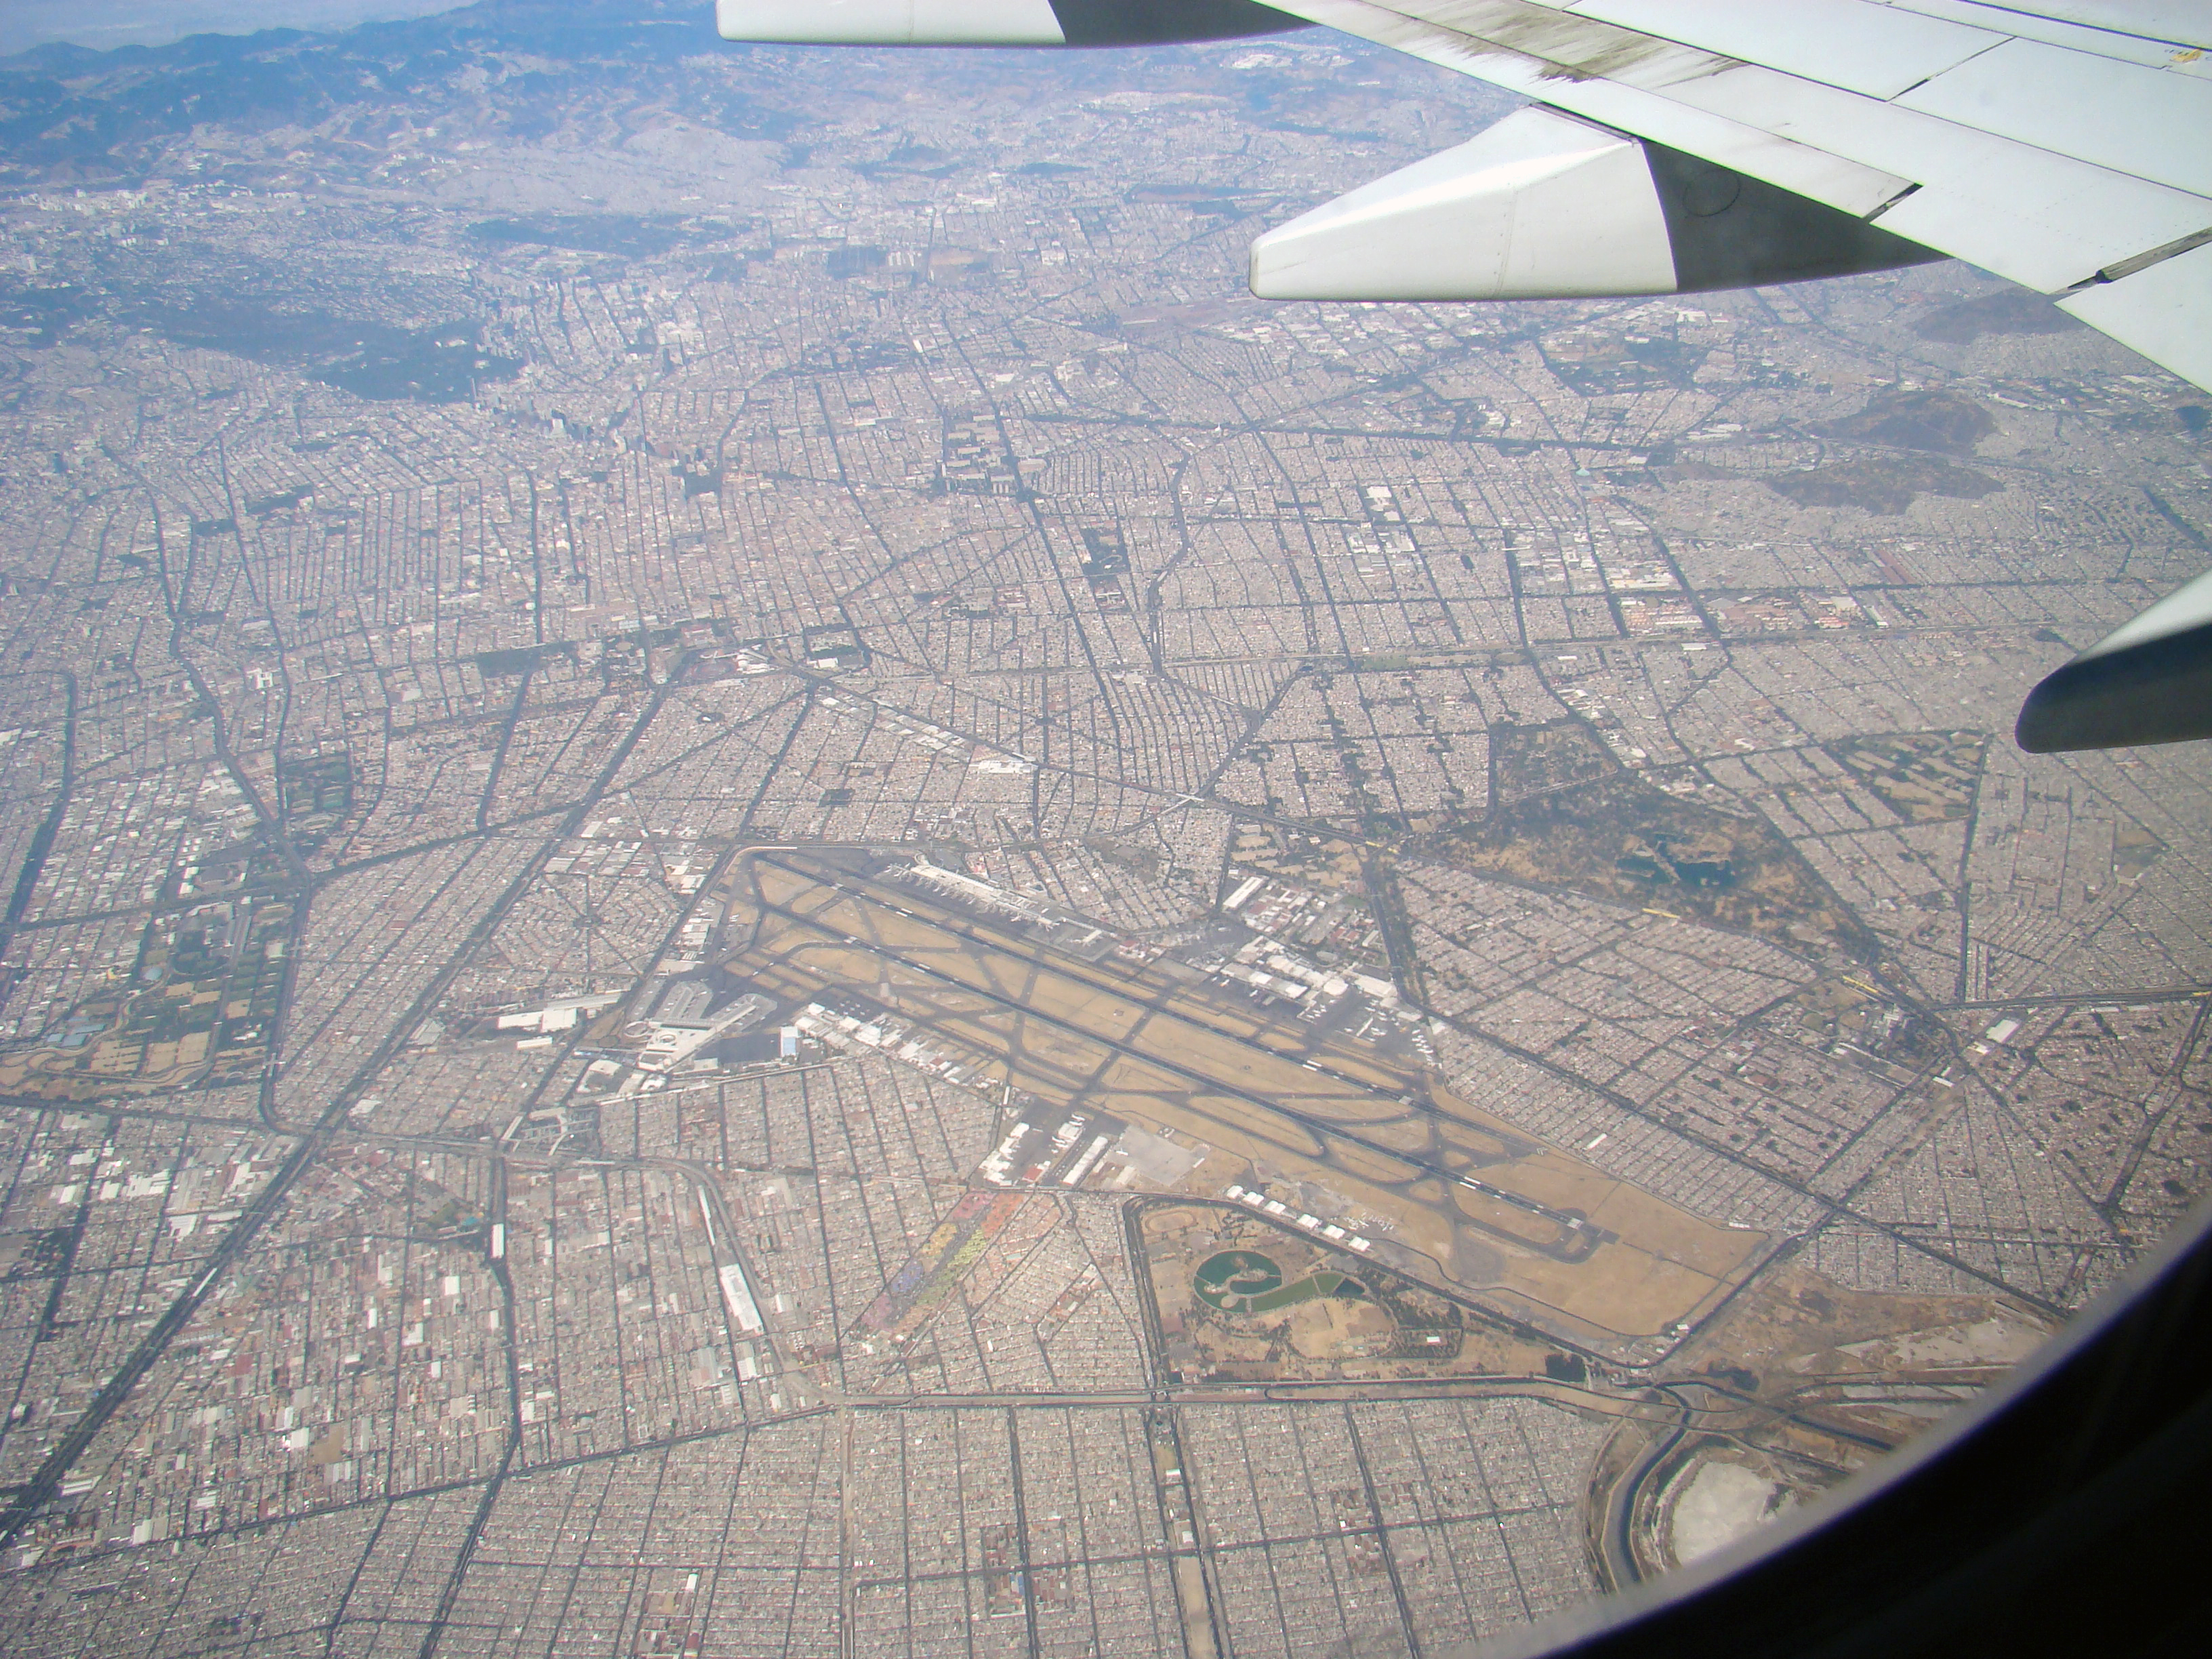 FileAerial View Of Mexico City Airport On Jpg Wikimedia - Airports in mexico